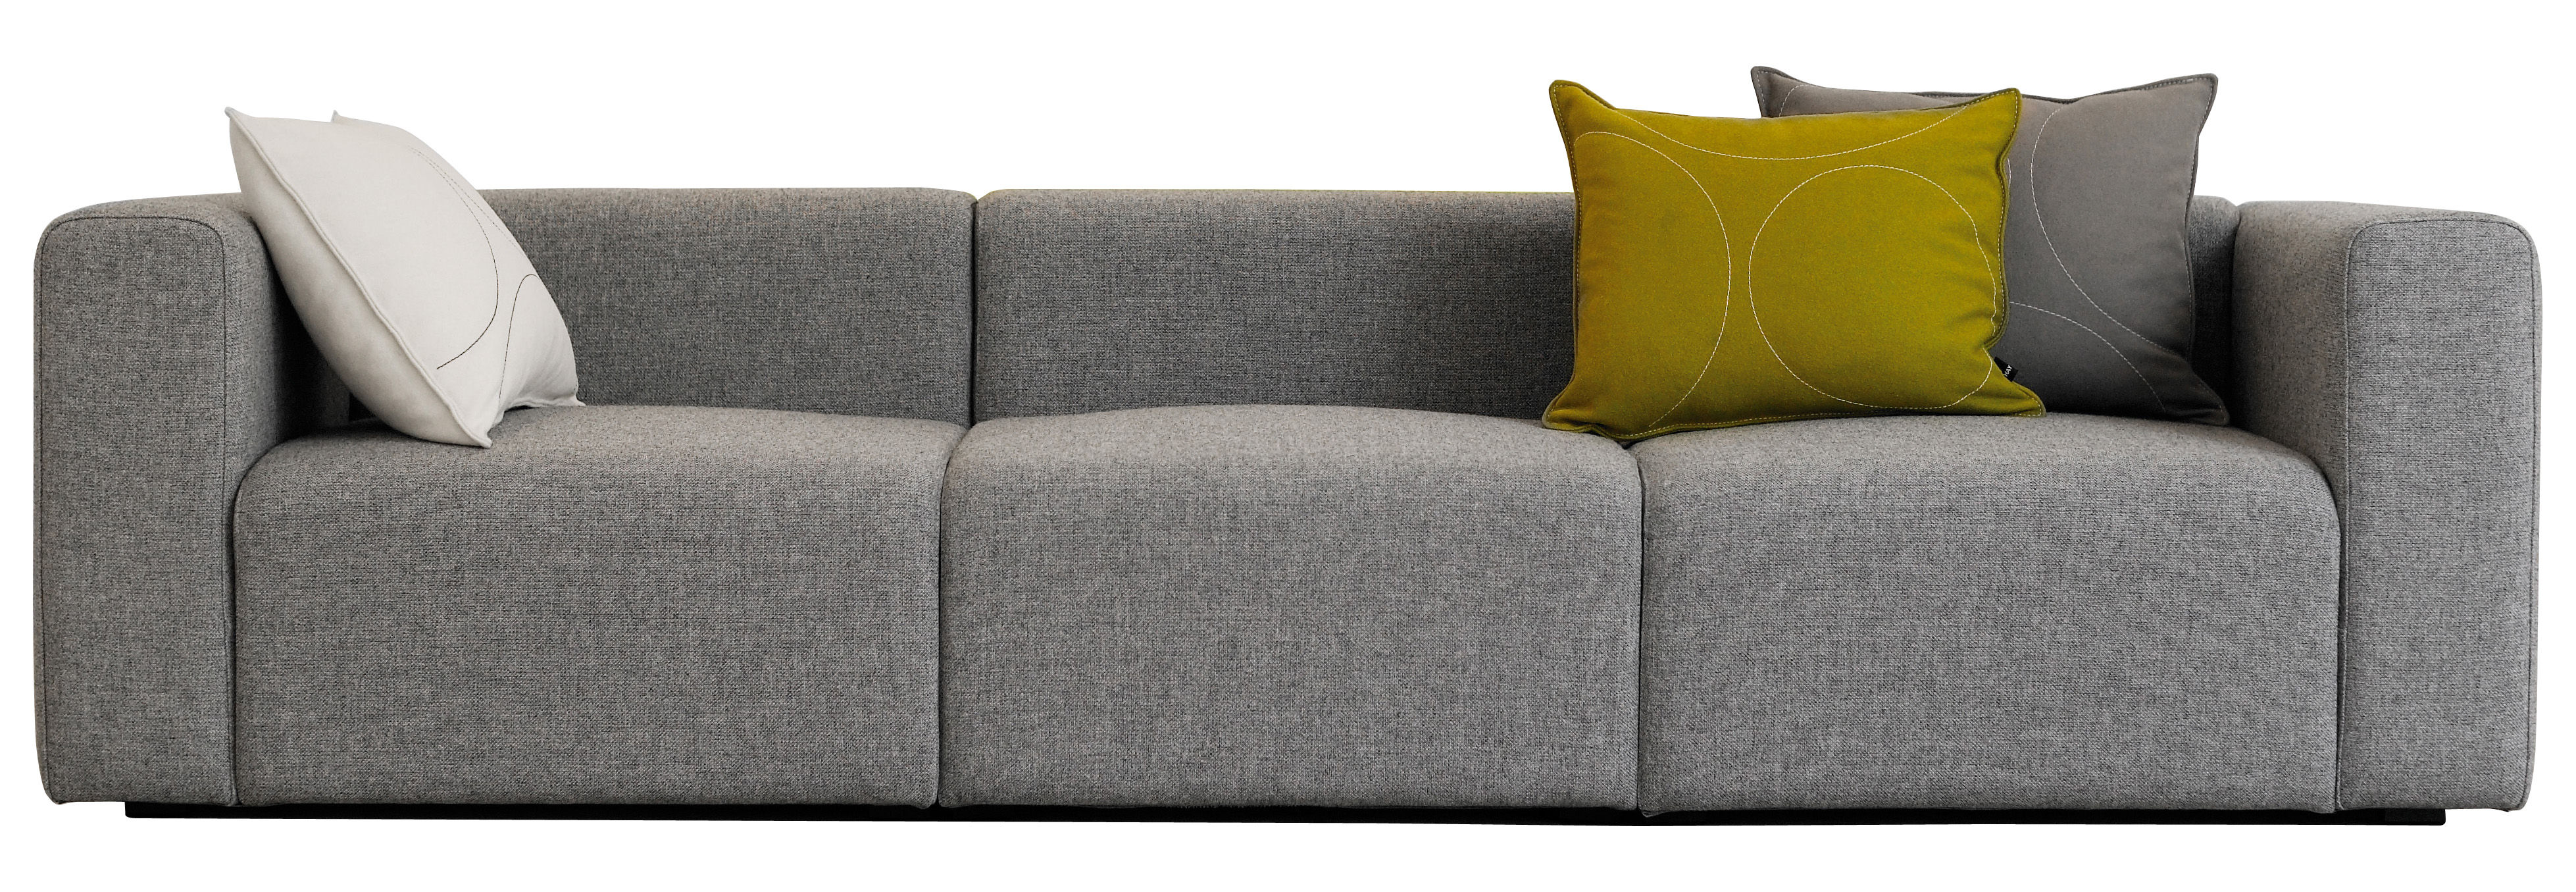 mags straight sofa 3 seats l 266 cm hallingdal fabric light grey by hay. Black Bedroom Furniture Sets. Home Design Ideas